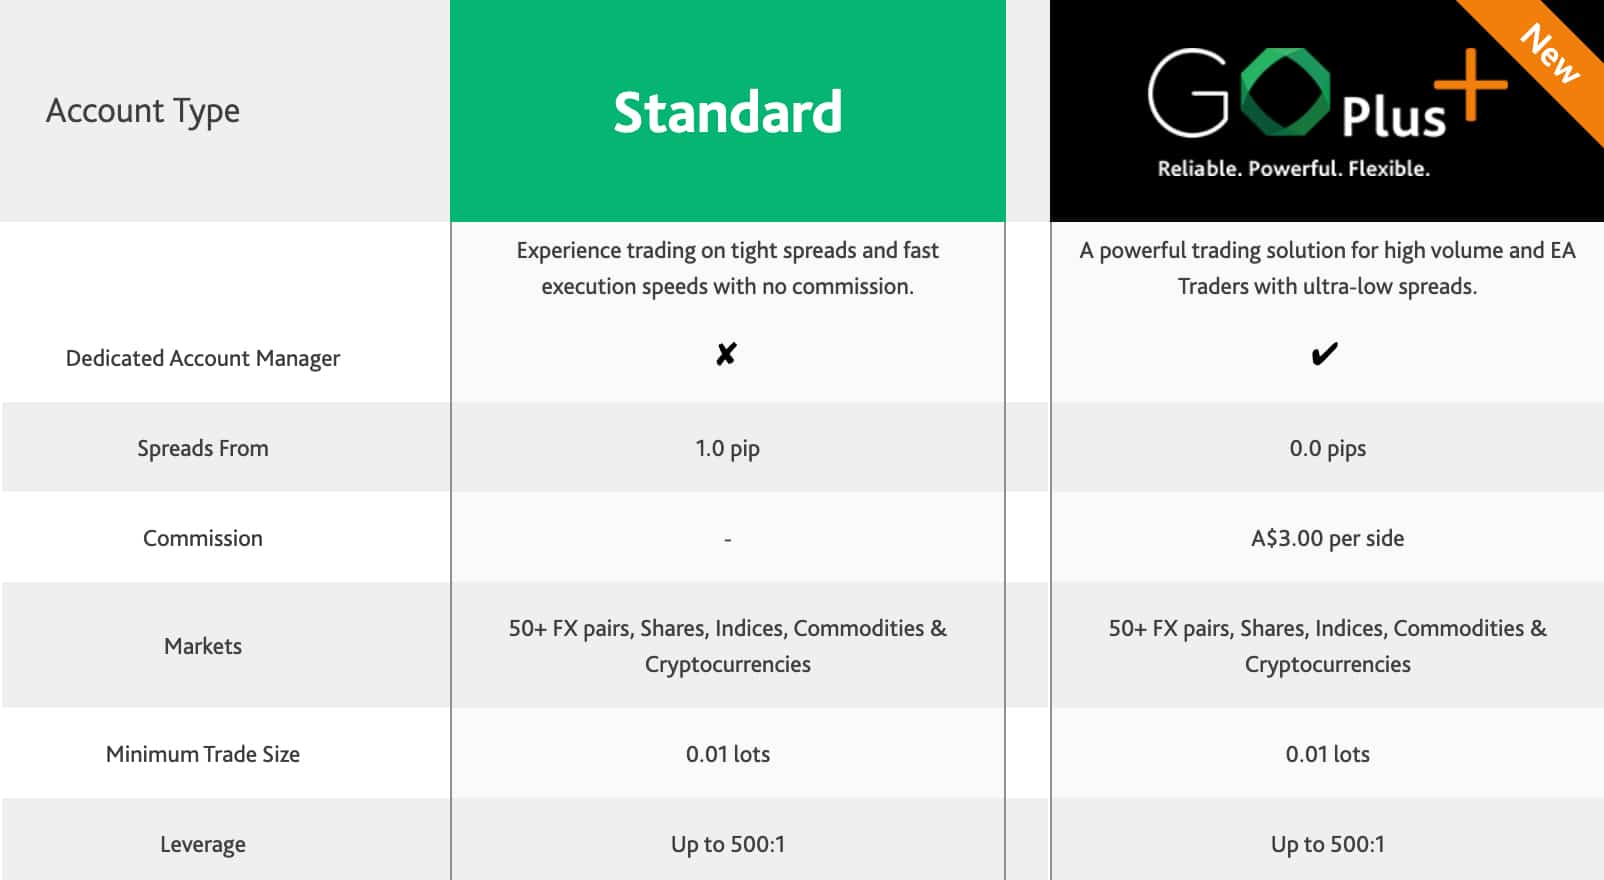 GO Markets Account Types Pro vs Standard